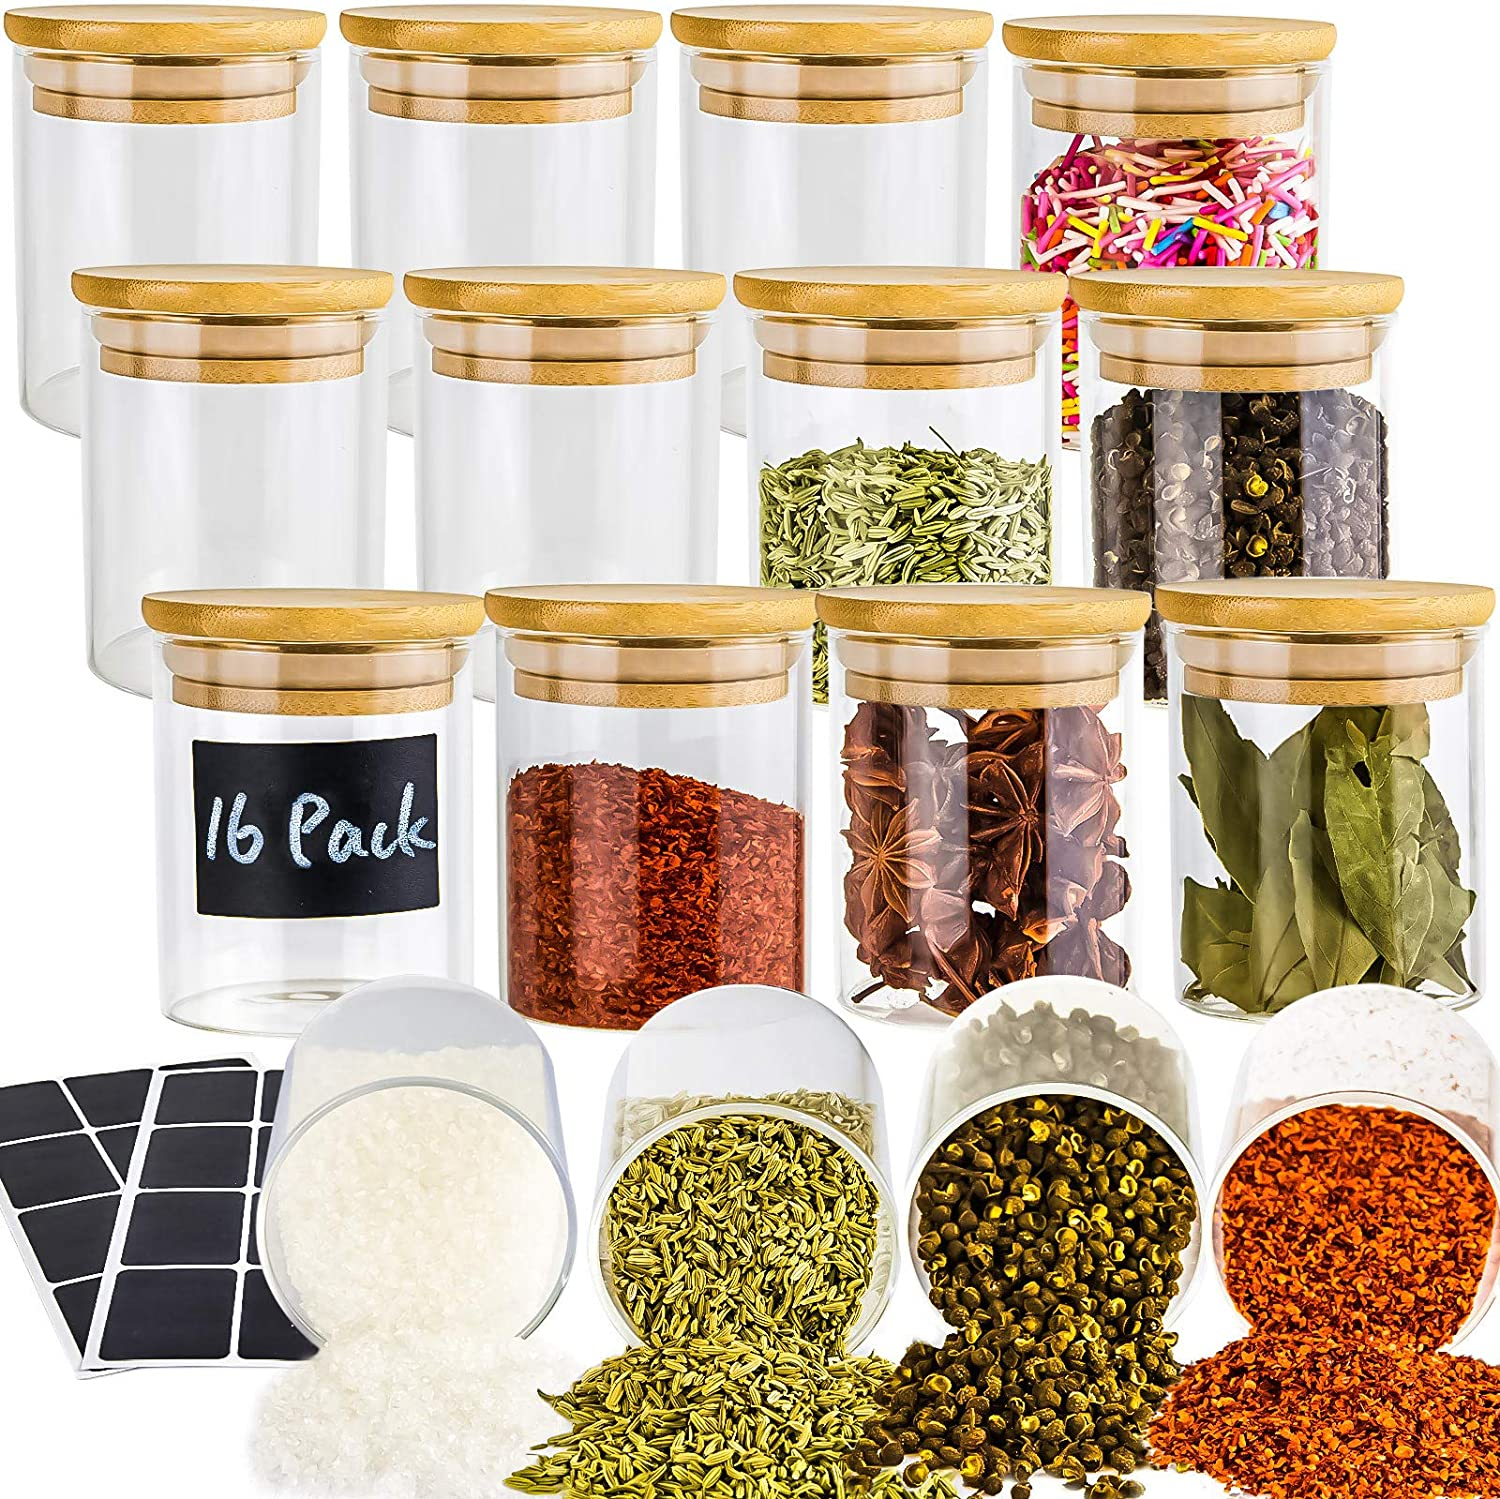 16 Piece Glass Jars with Lids, Airtight Bamboo Lids Food Storage Containers Set For Kitchen, Spice, Coffee, Beans, Candy, Nuts, Herbs, Dry Food Canisters (Extra Chalkboard Labels) - 8oz Clear